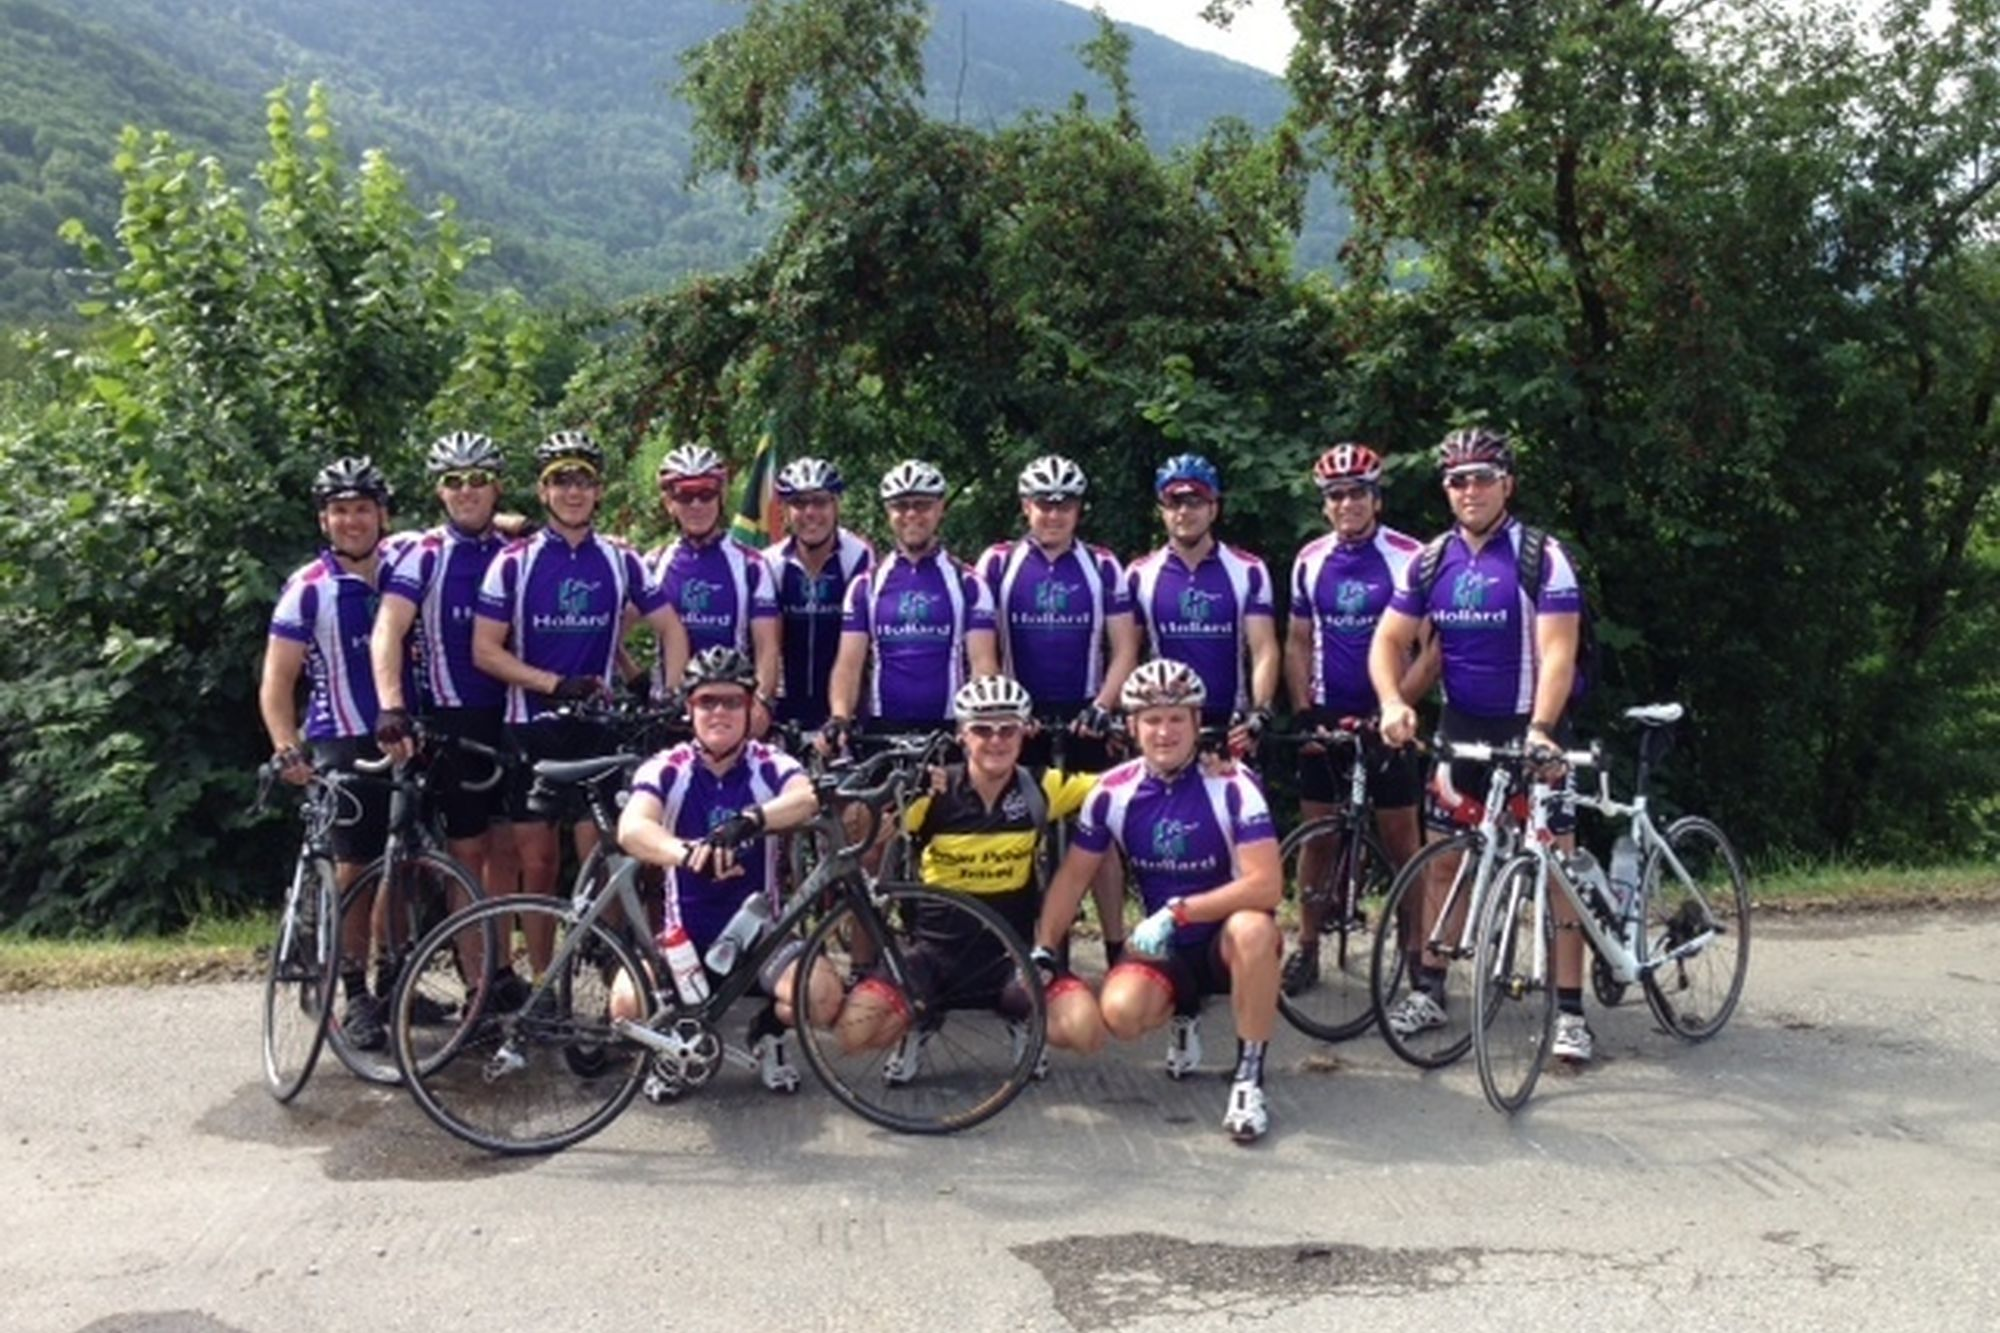 Team SA in Hollard kit